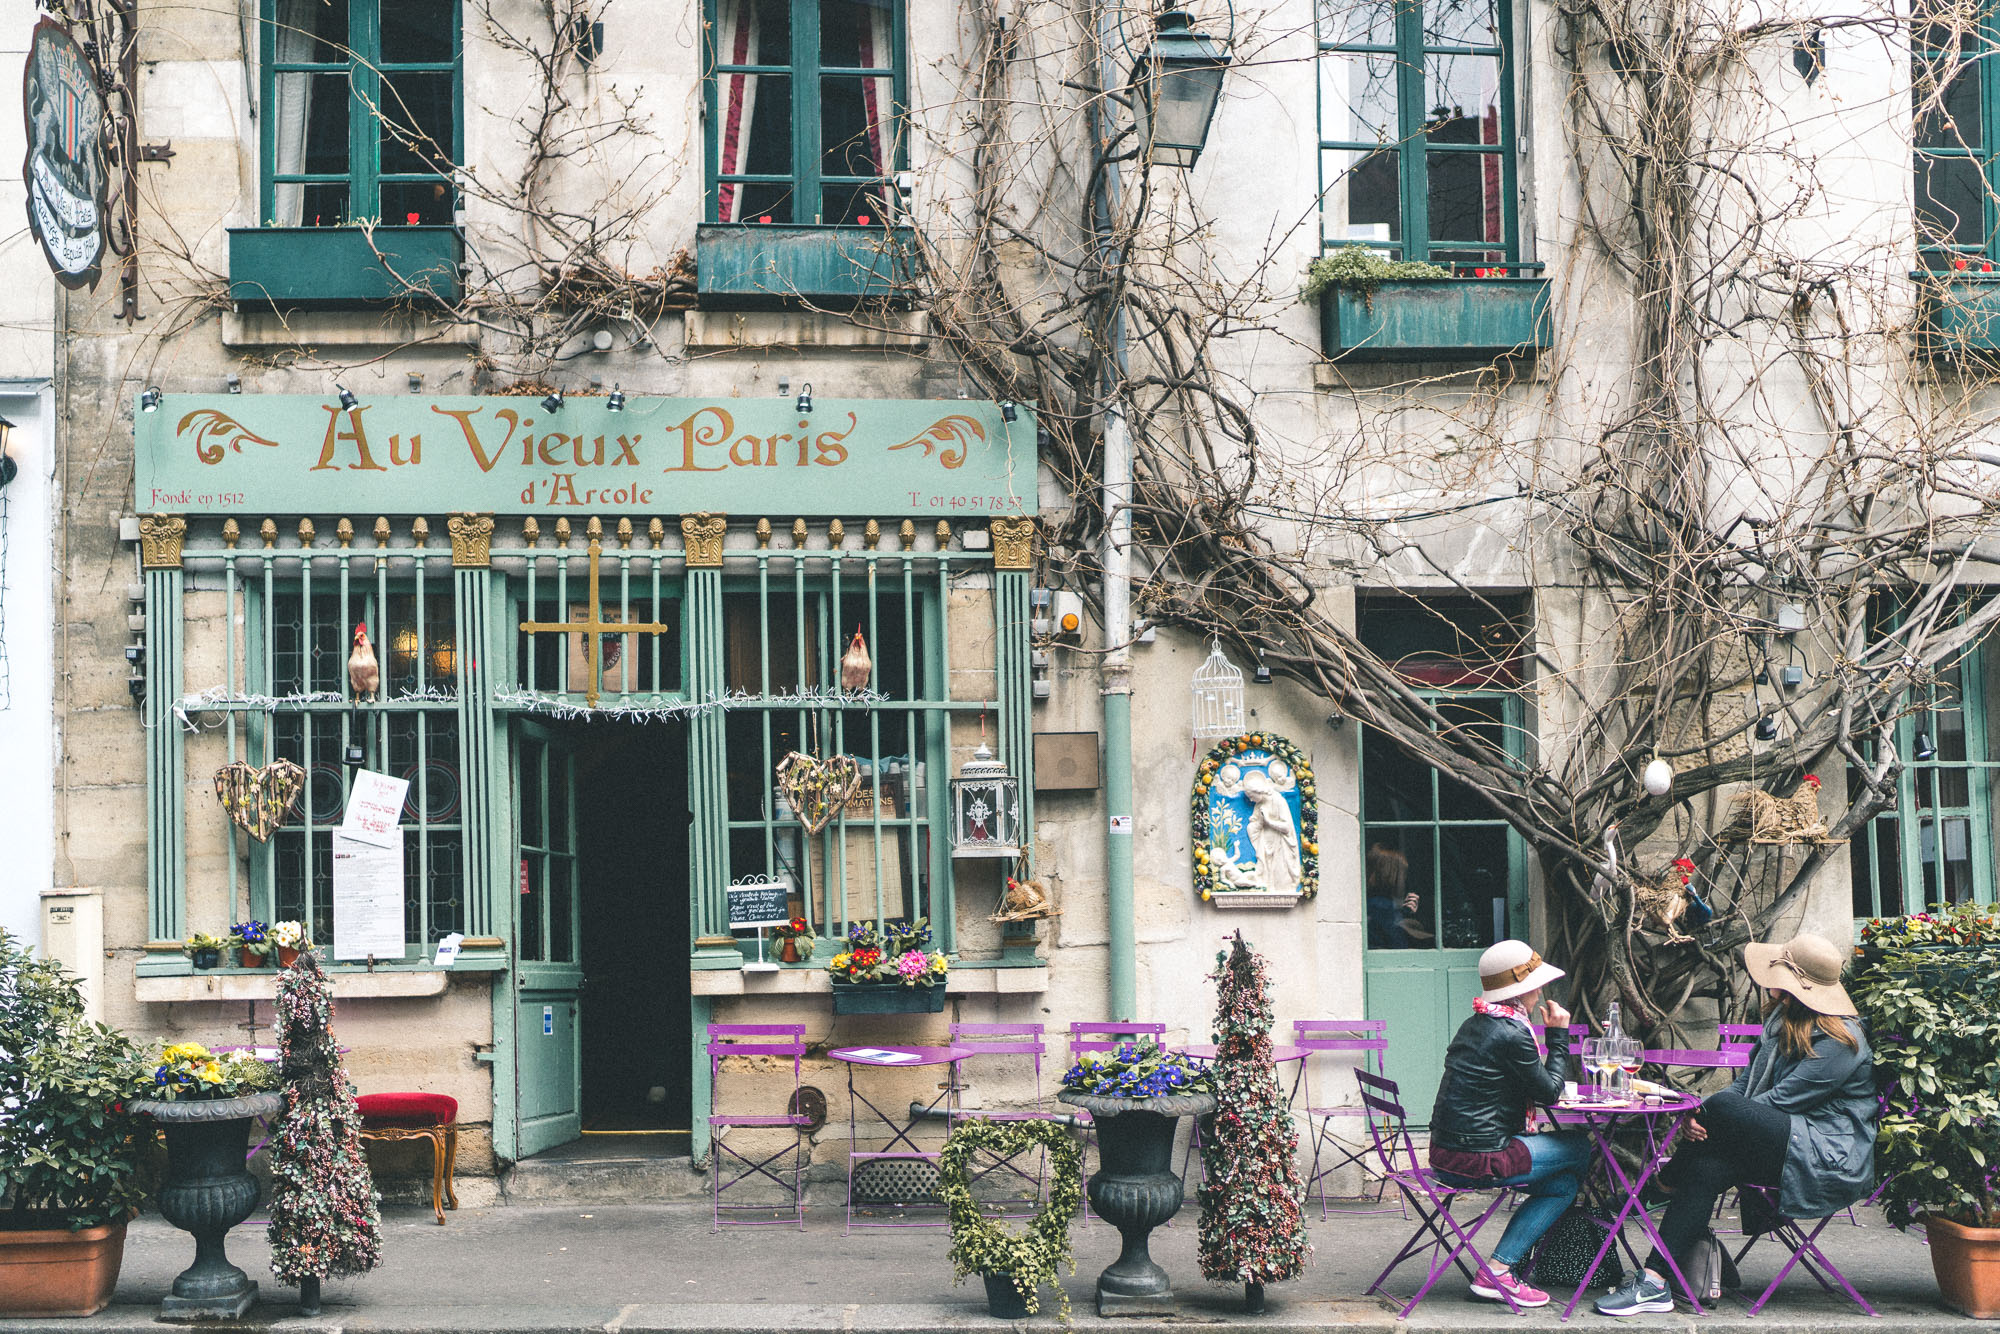 Photogenic facades in Paris Ile de la Cite - Café Au Vieux Paris D'Arcole - Complete Paris Travel Guide